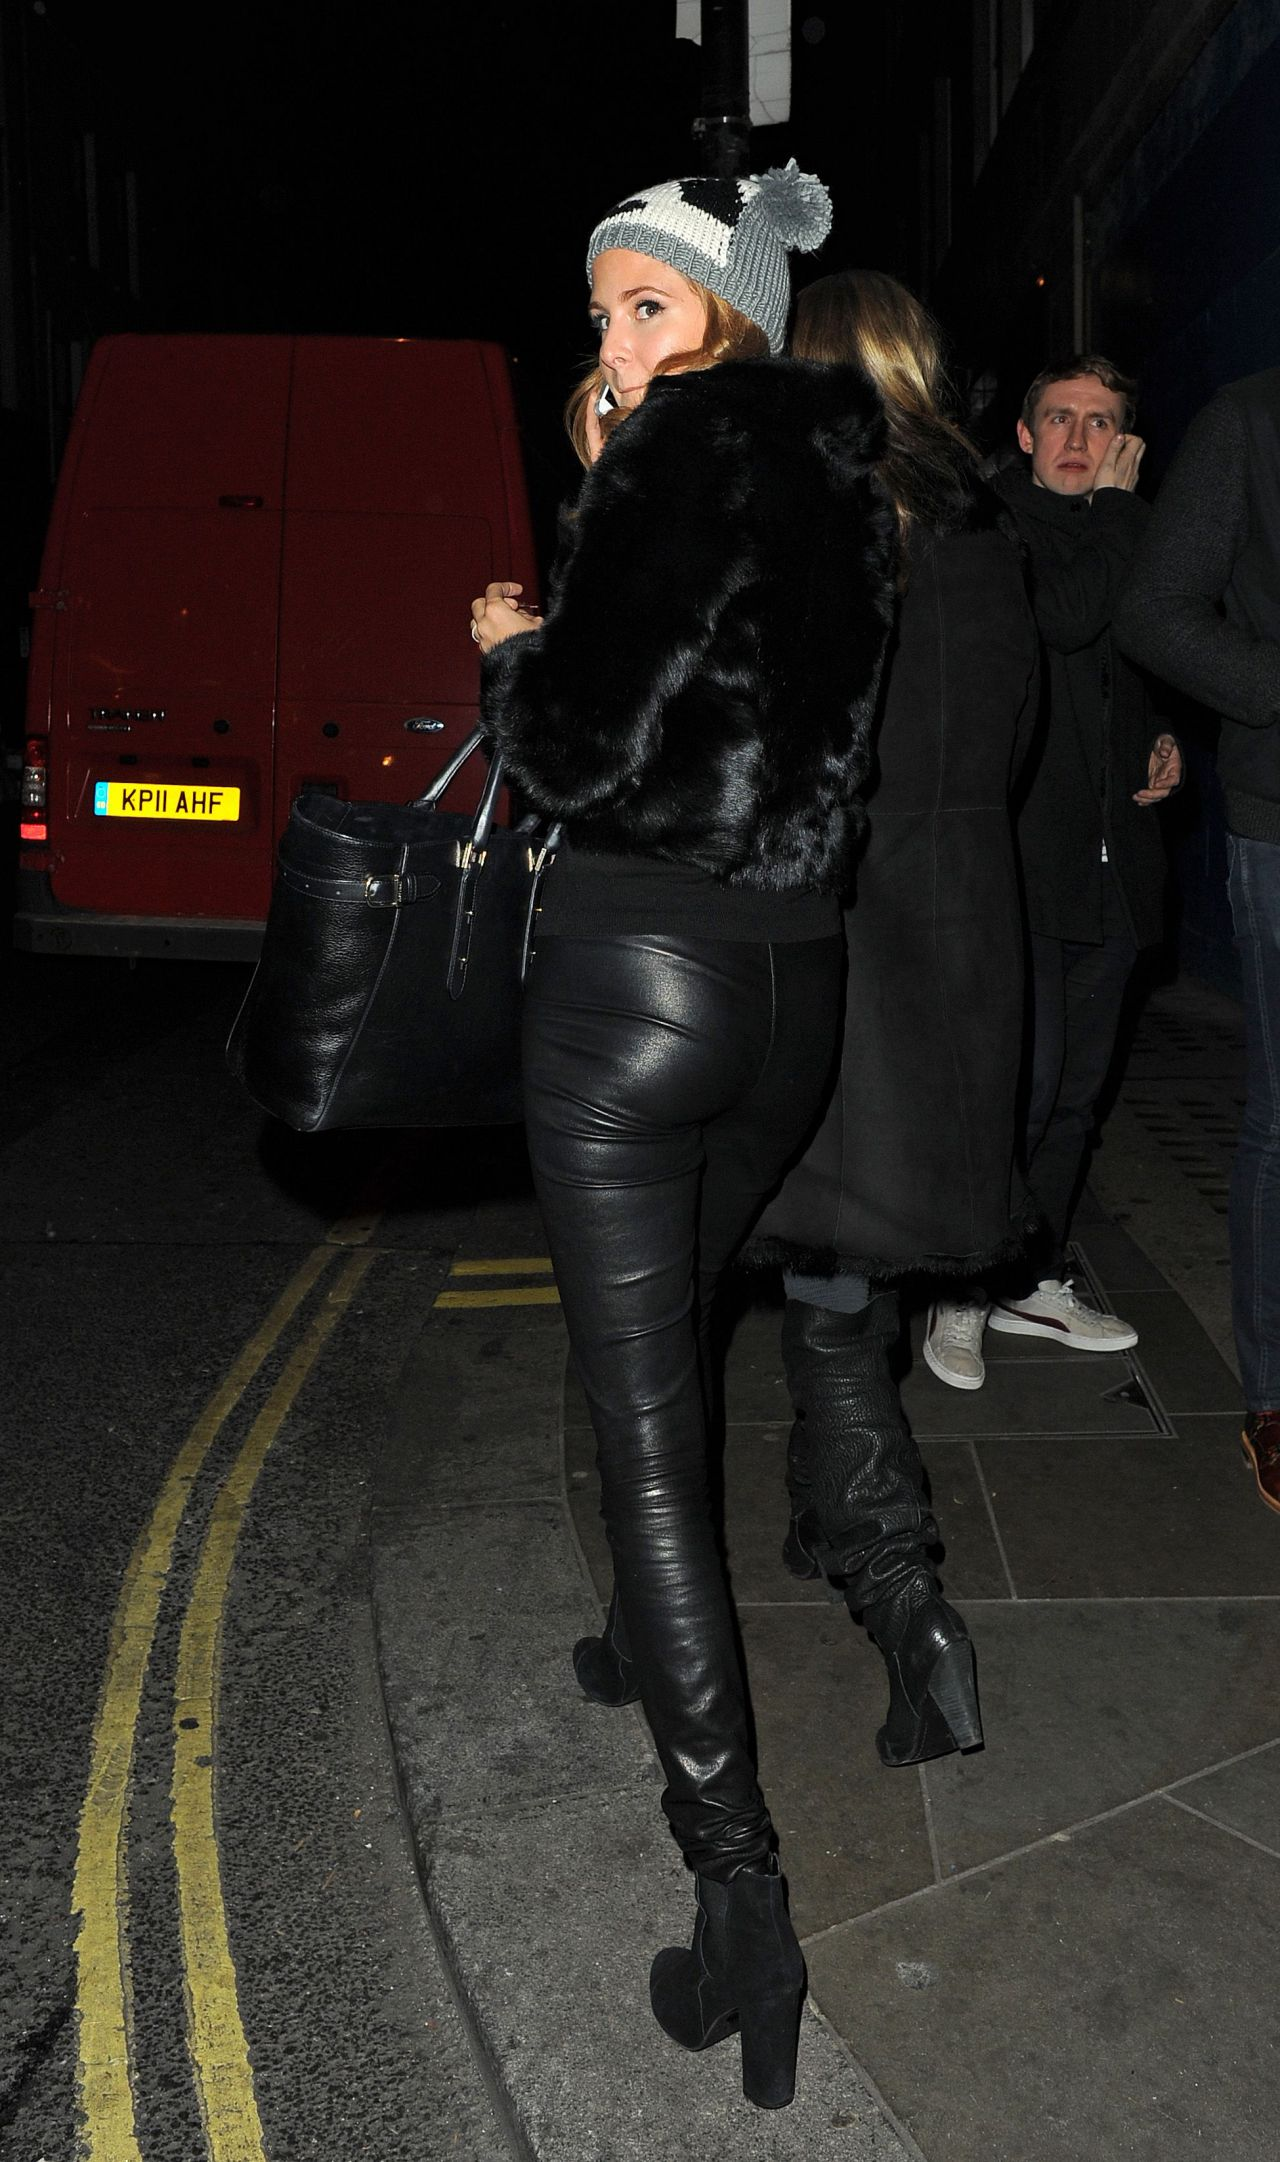 Millie Mackintosh Street Style  Out in Leather Pants in Chelsea  December 2013